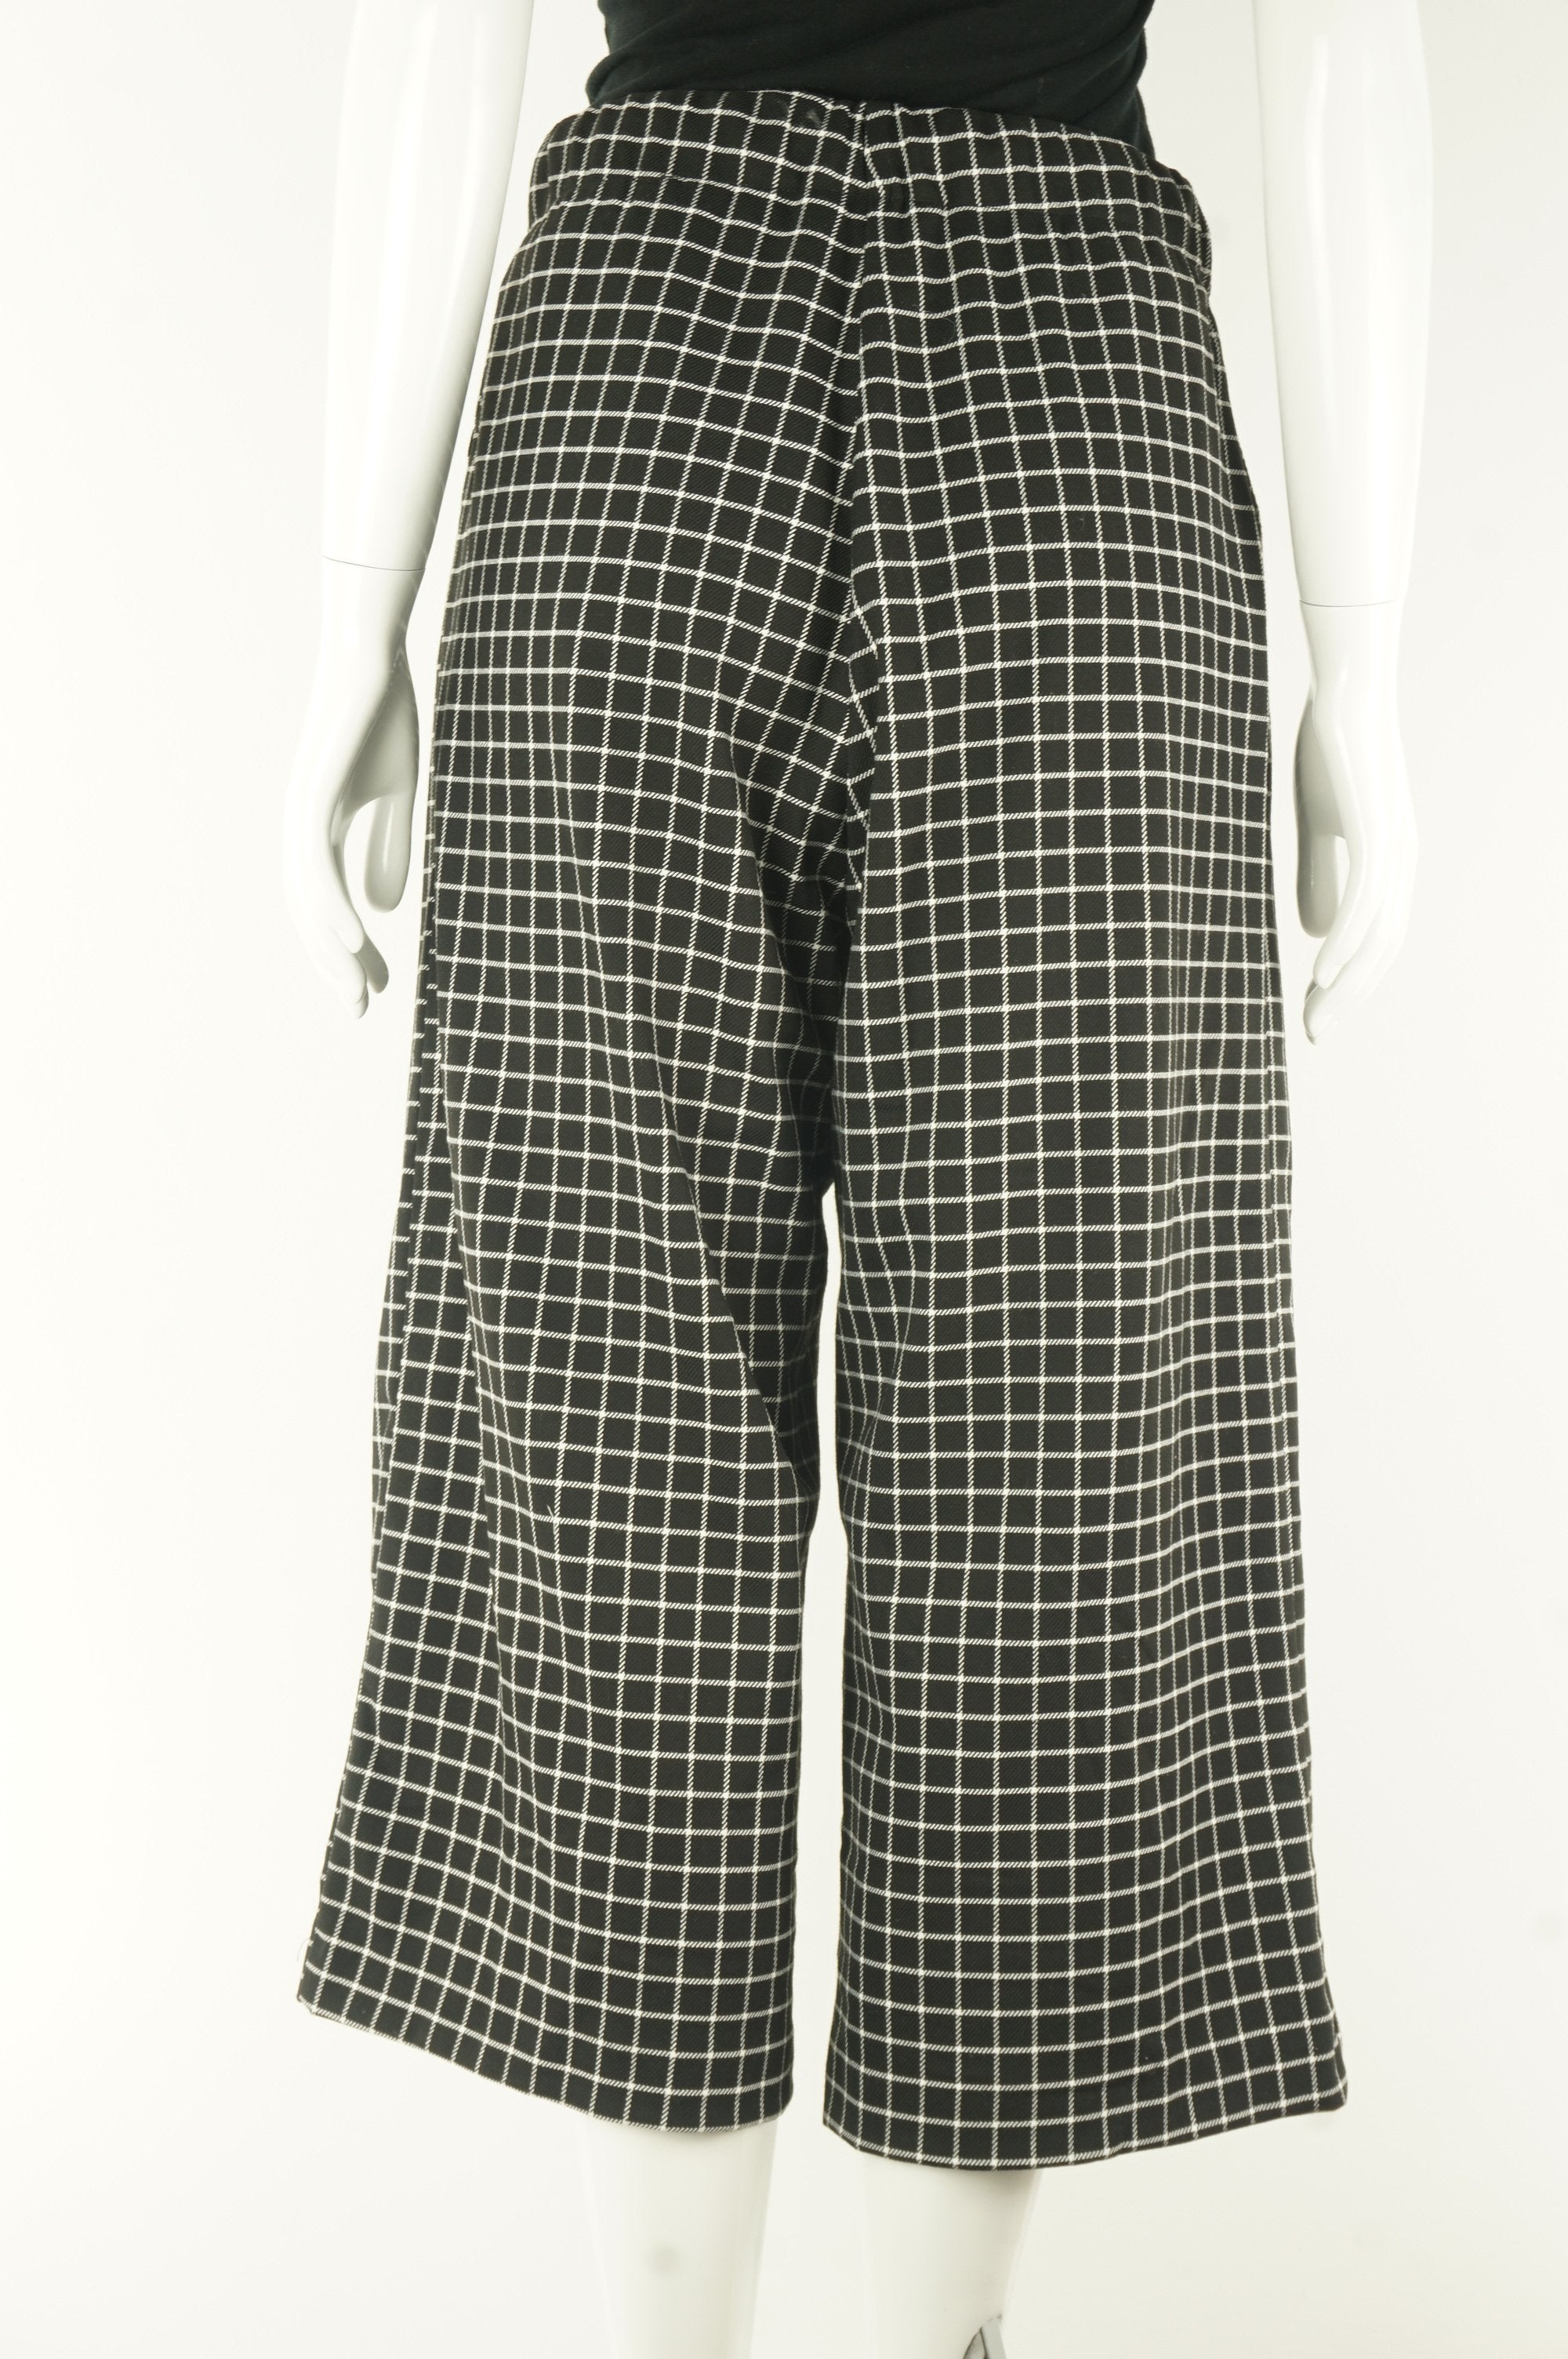 Monki Checked Wide Leg Pants With Elastic Waistband, High waisted wide legged pants are my new favorite! Why? For the exact moment after dinner when you feel overly stuffed but the pants are expandable and hides the food baby…, Black, White, 67% Polyester, 32% Viscose, 1% Elastane, women's Pants & Shorts, women's Black, White Pants & Shorts, Monki women's Pants & Shorts, Women's wide legged pants, women's loose pants